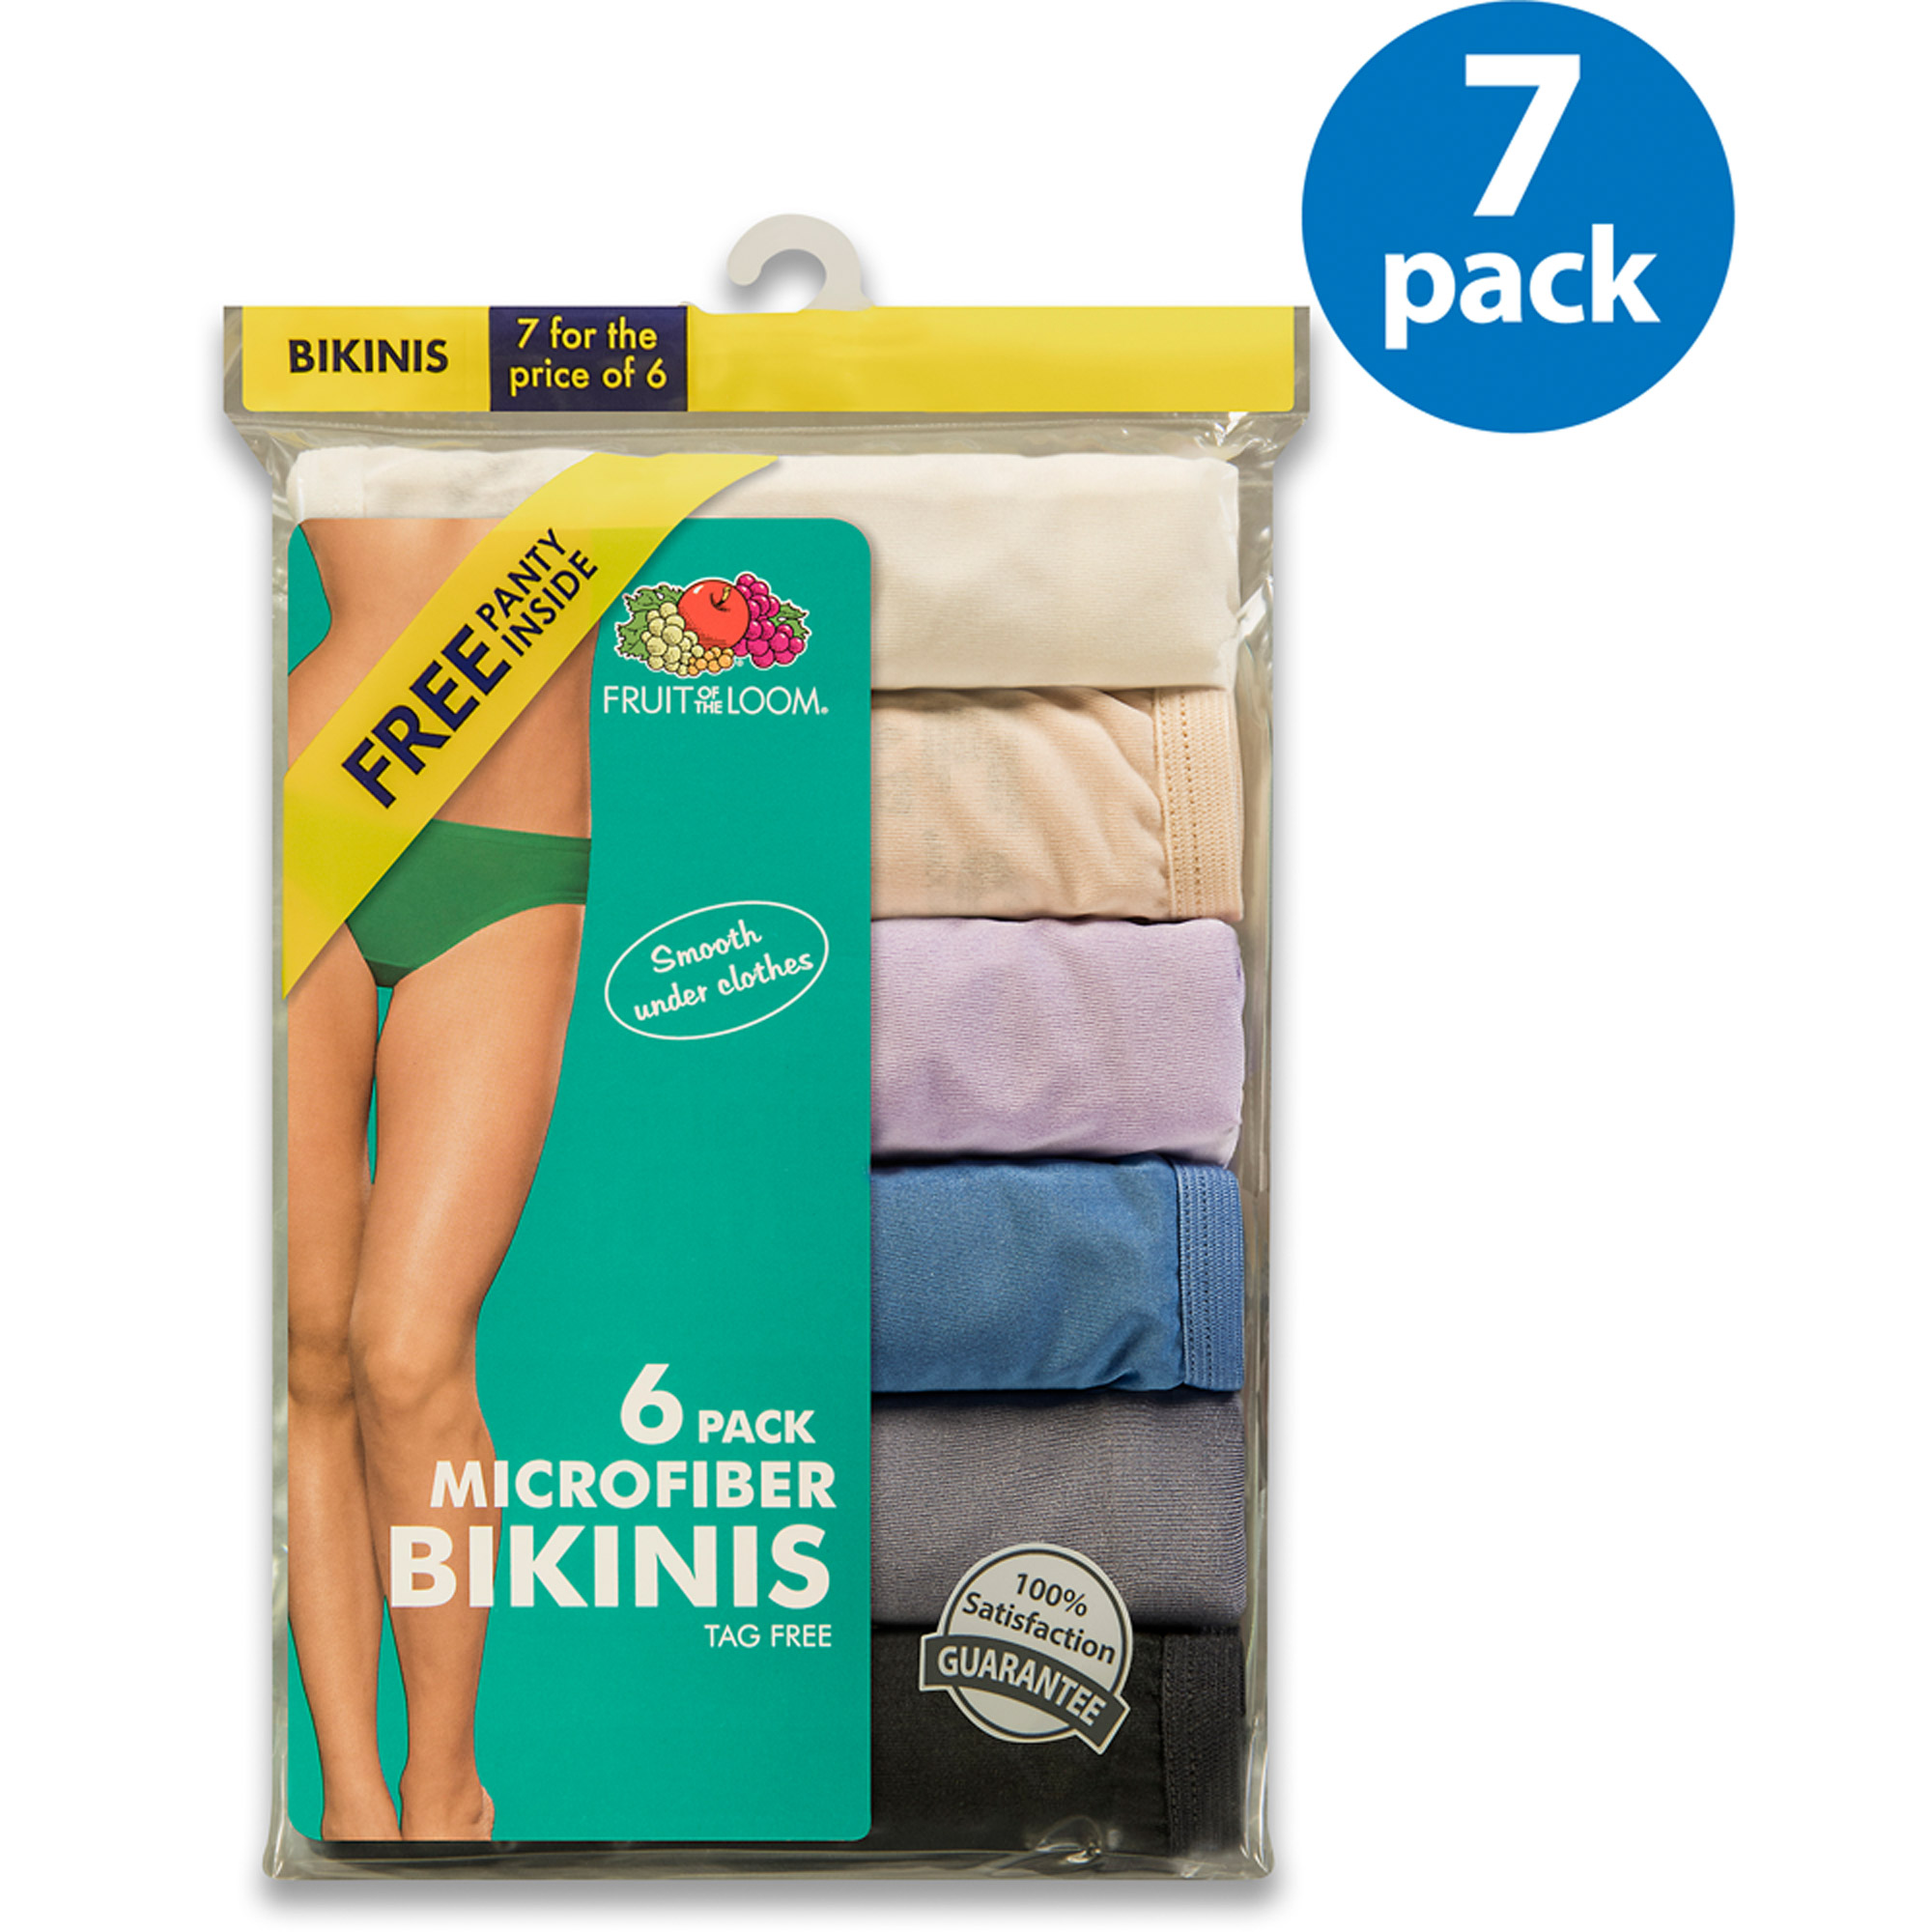 Fruit of the Loom Ladies' Microfiber Bikinis 6+1 Bonus Pack